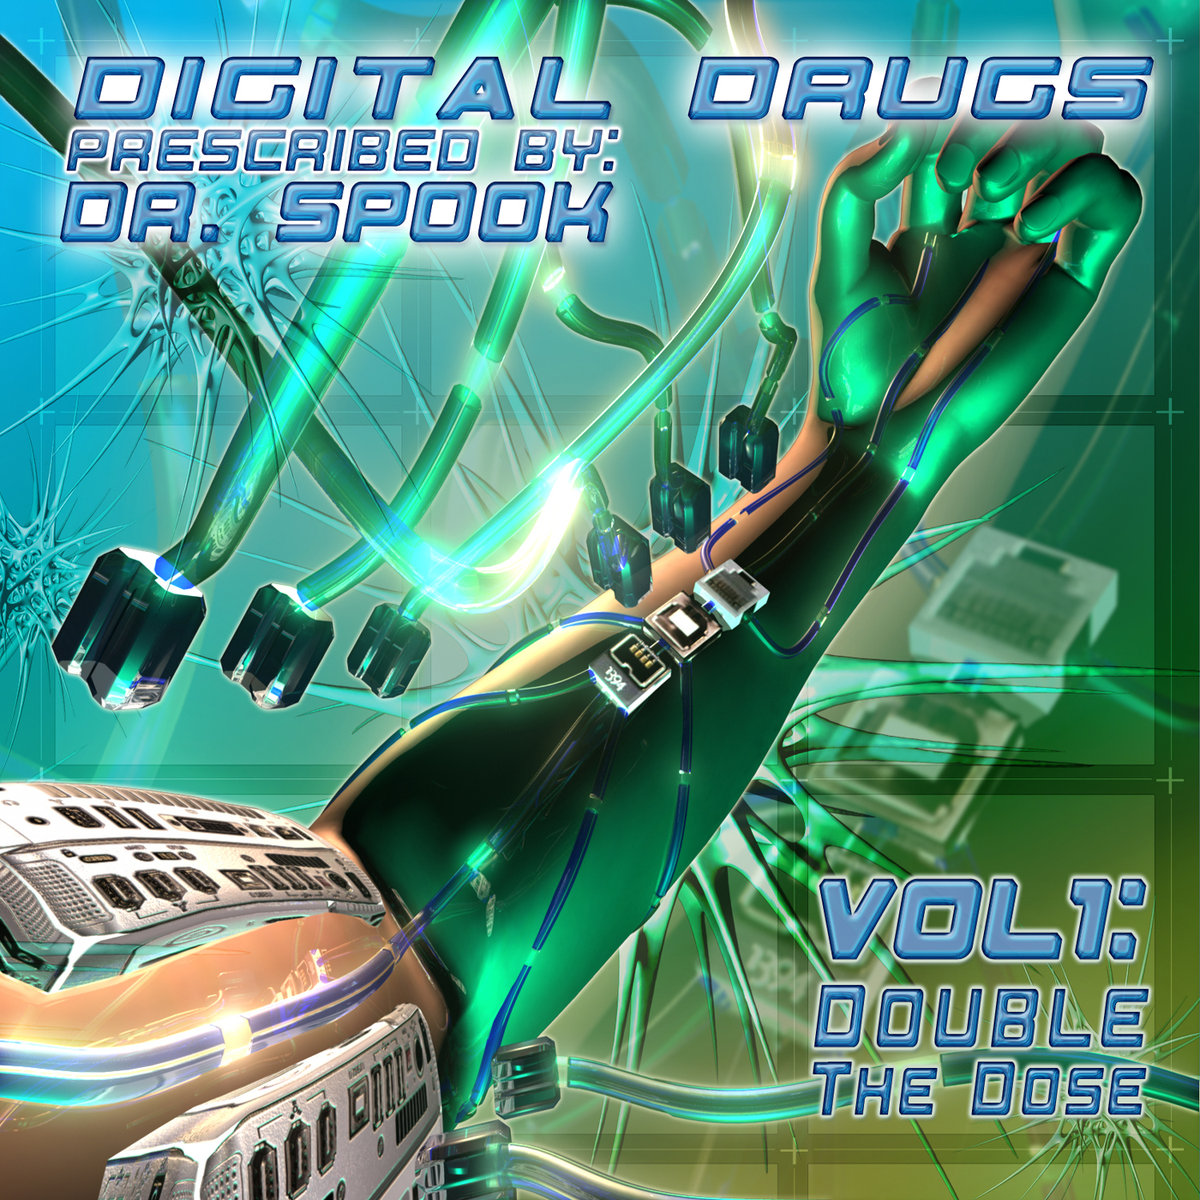 Splintern vs. AlienZed - Top Freaq @ 'Various Artists - Digital Drugs Vol.1: Double the Dose (Prescribed by Dr. Spook)' album (electronic, goa)